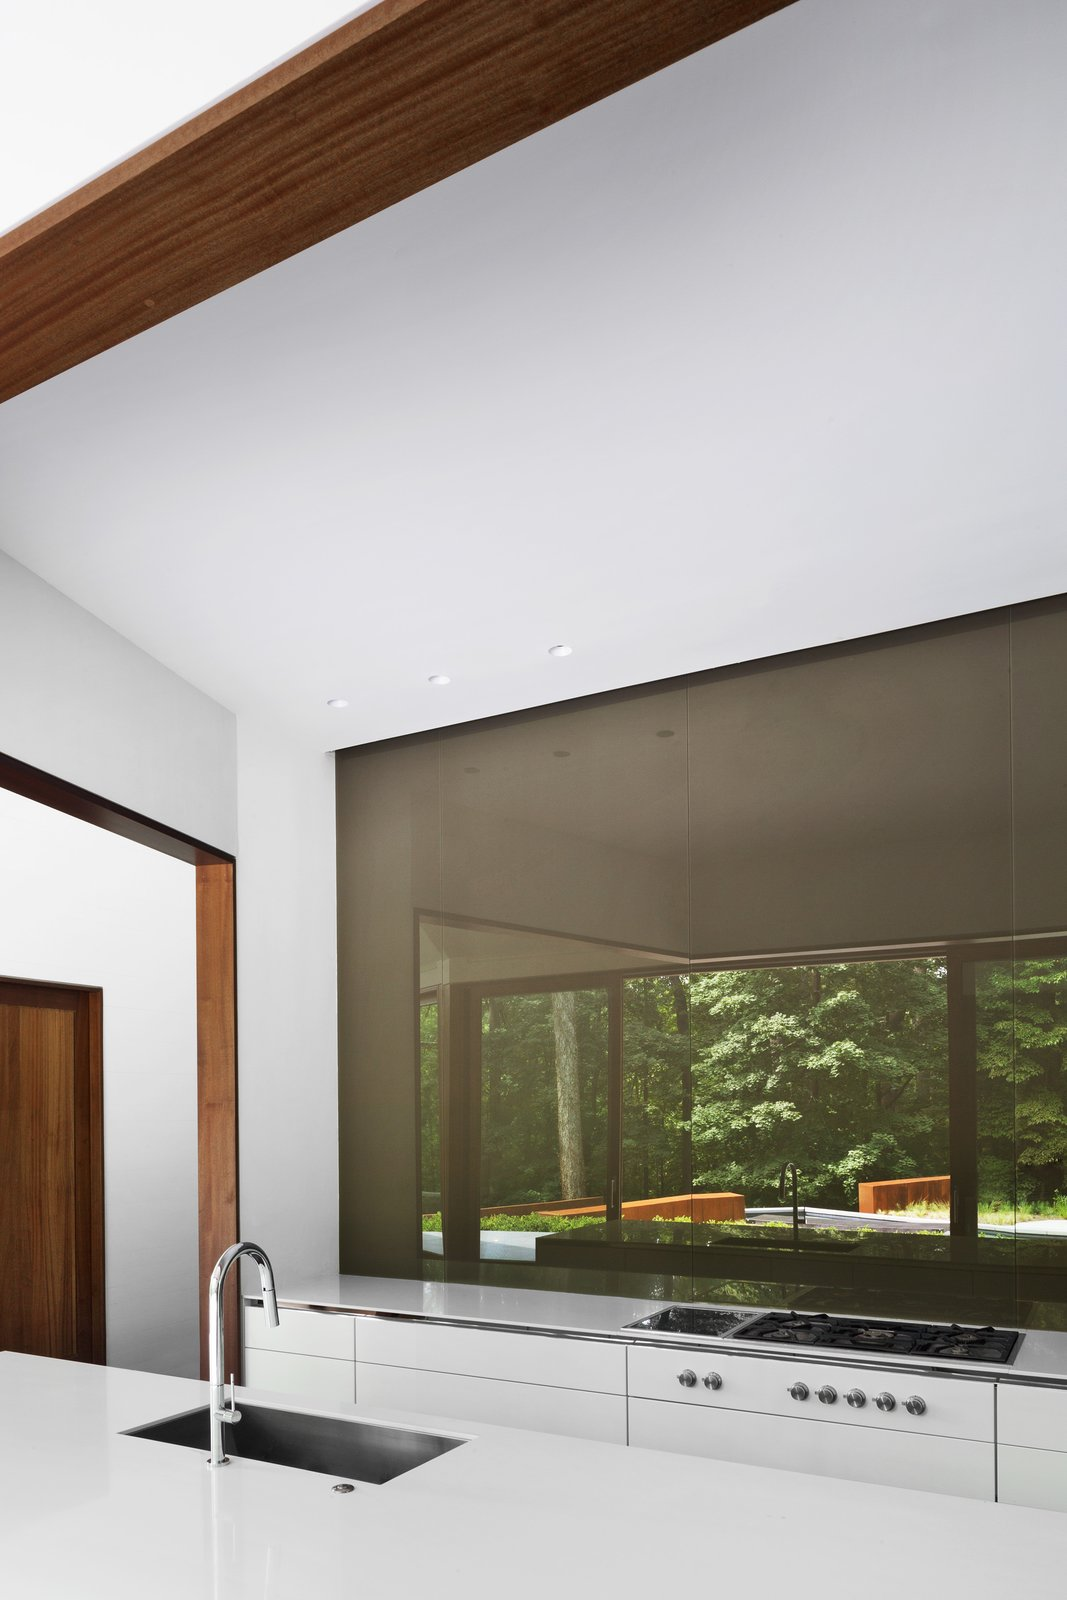 Kitchen, Undermount Sink, Recessed Lighting, Cooktops, and White Cabinet The owners have a wall of reverse-painted glass in the kitchen so they can gaze at the trees as they cook. The faucet is by Brizo.  Photo 7 of 14 in After a Fire, a Maryland Couple Turn to Charred Wood to Rebuild Their House